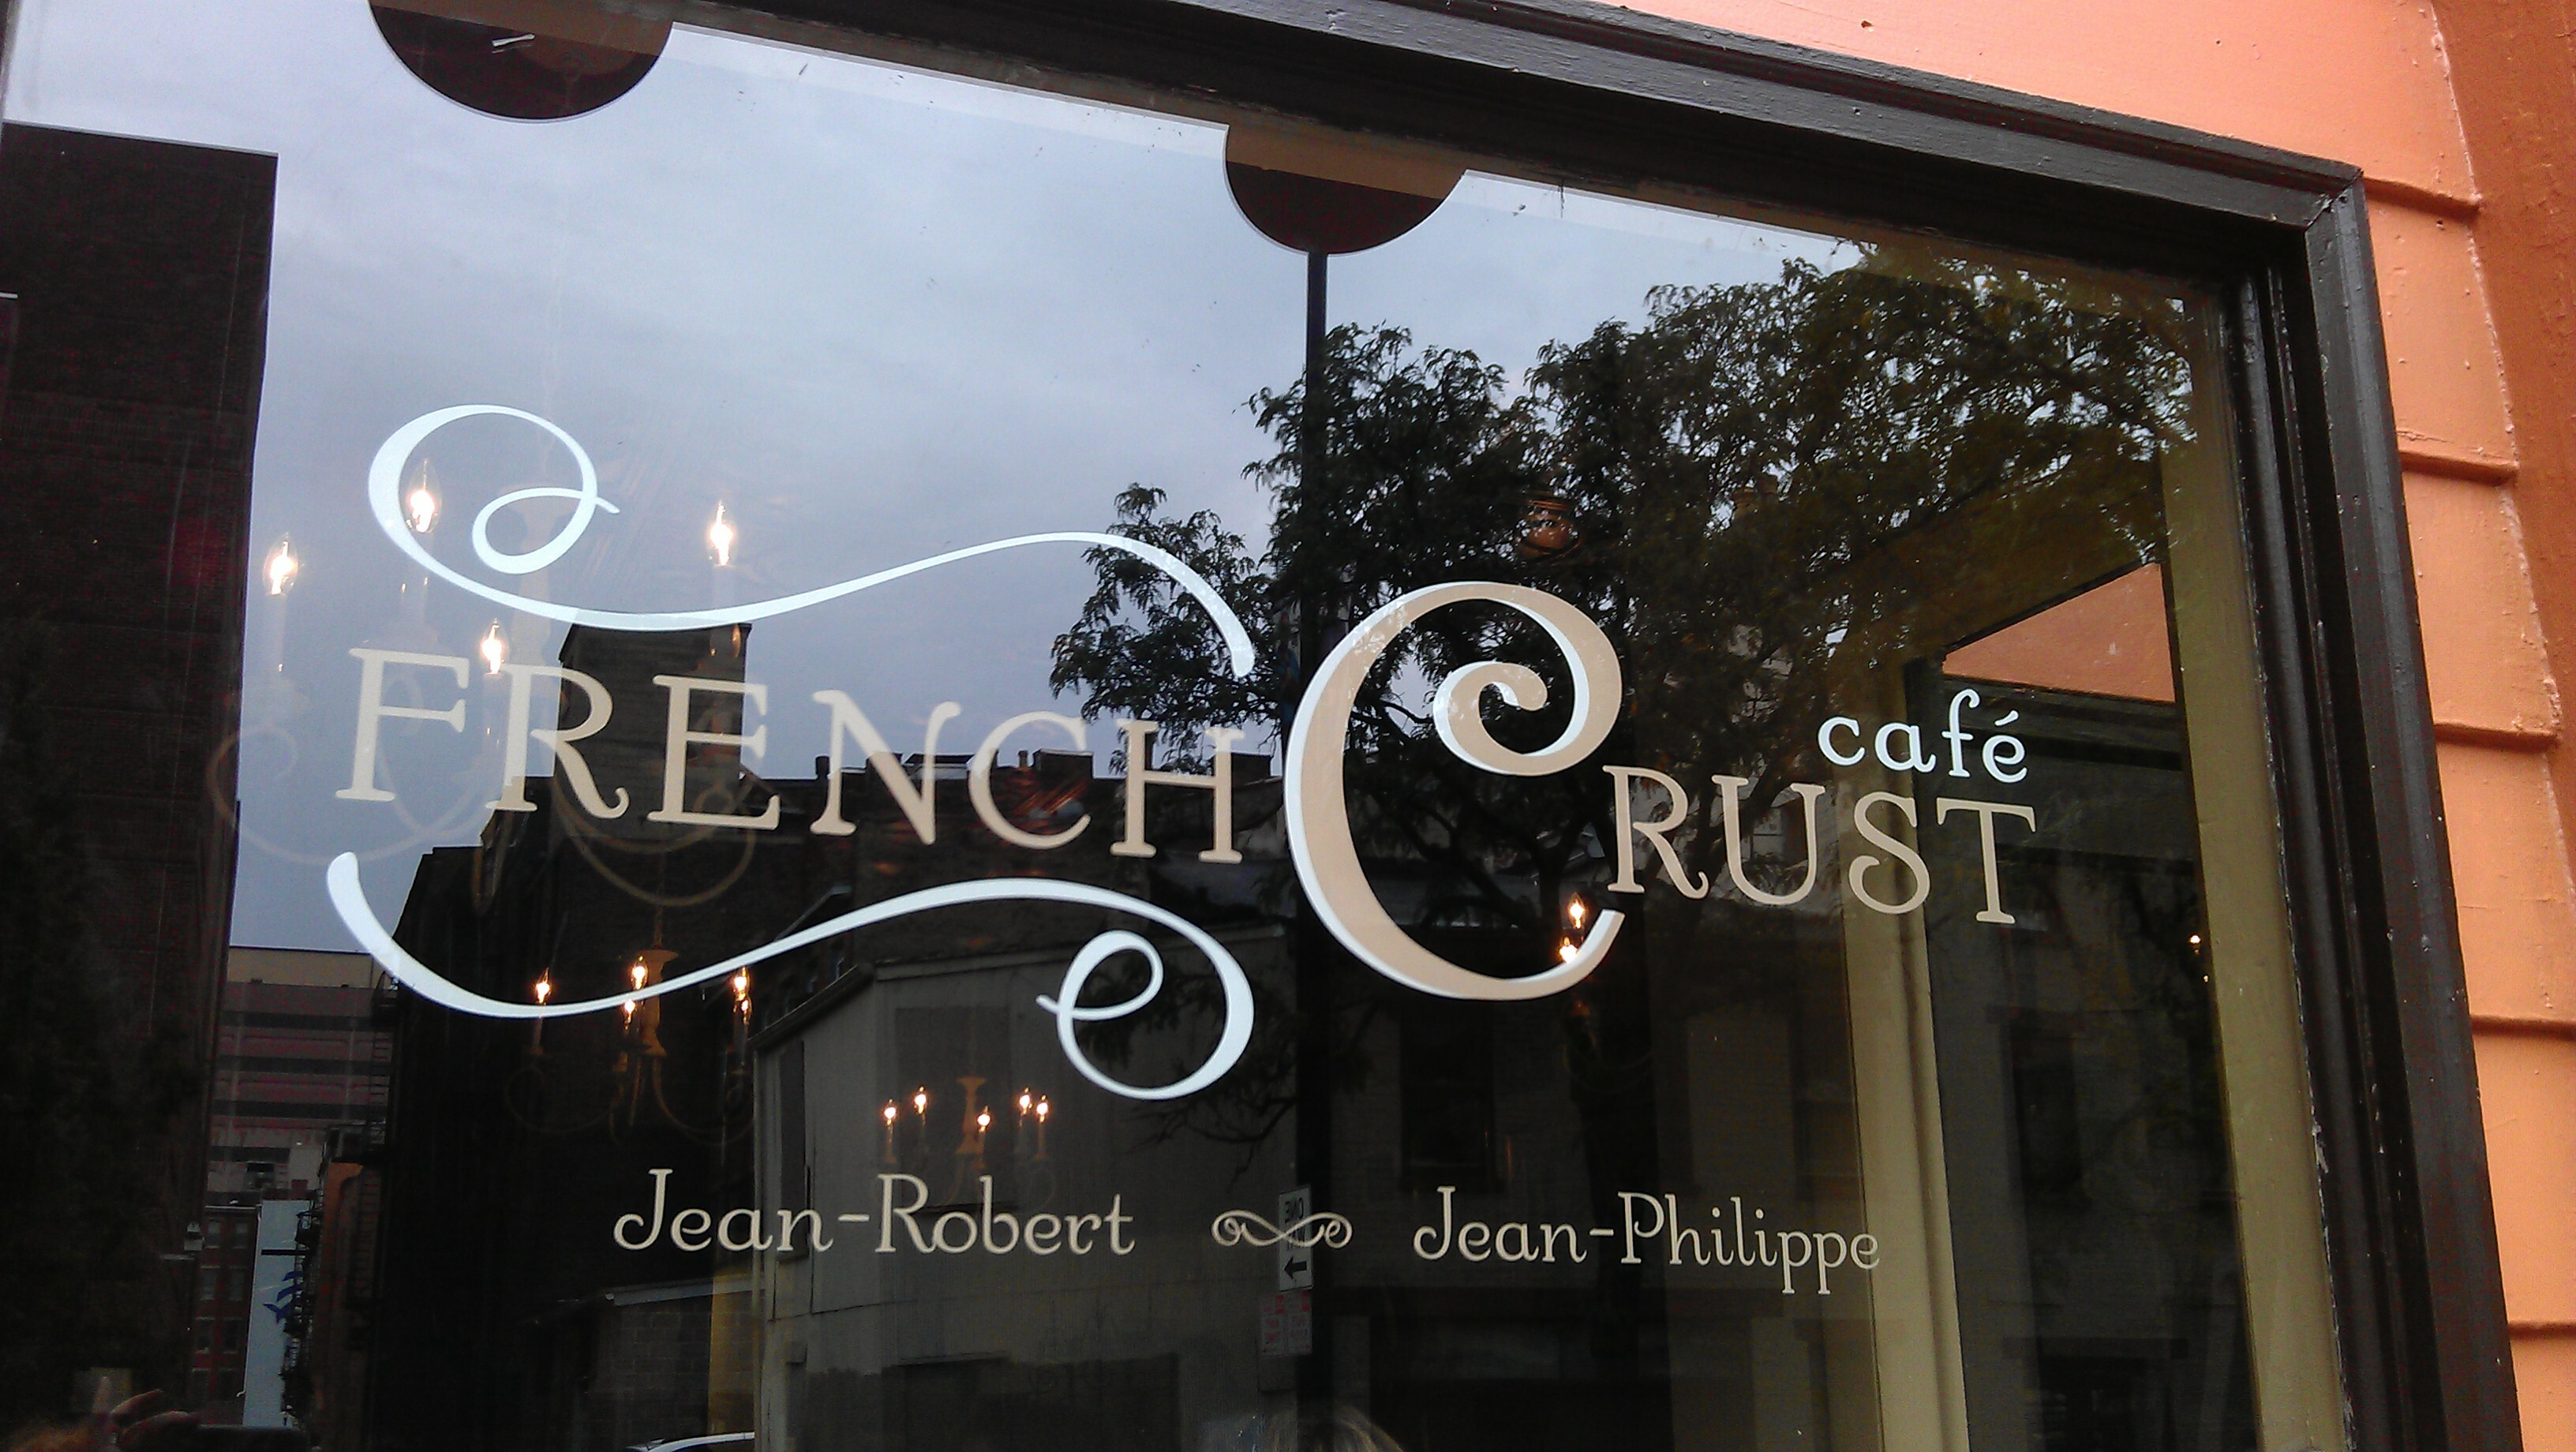 Master Chef Jean-Robert French Crust Café